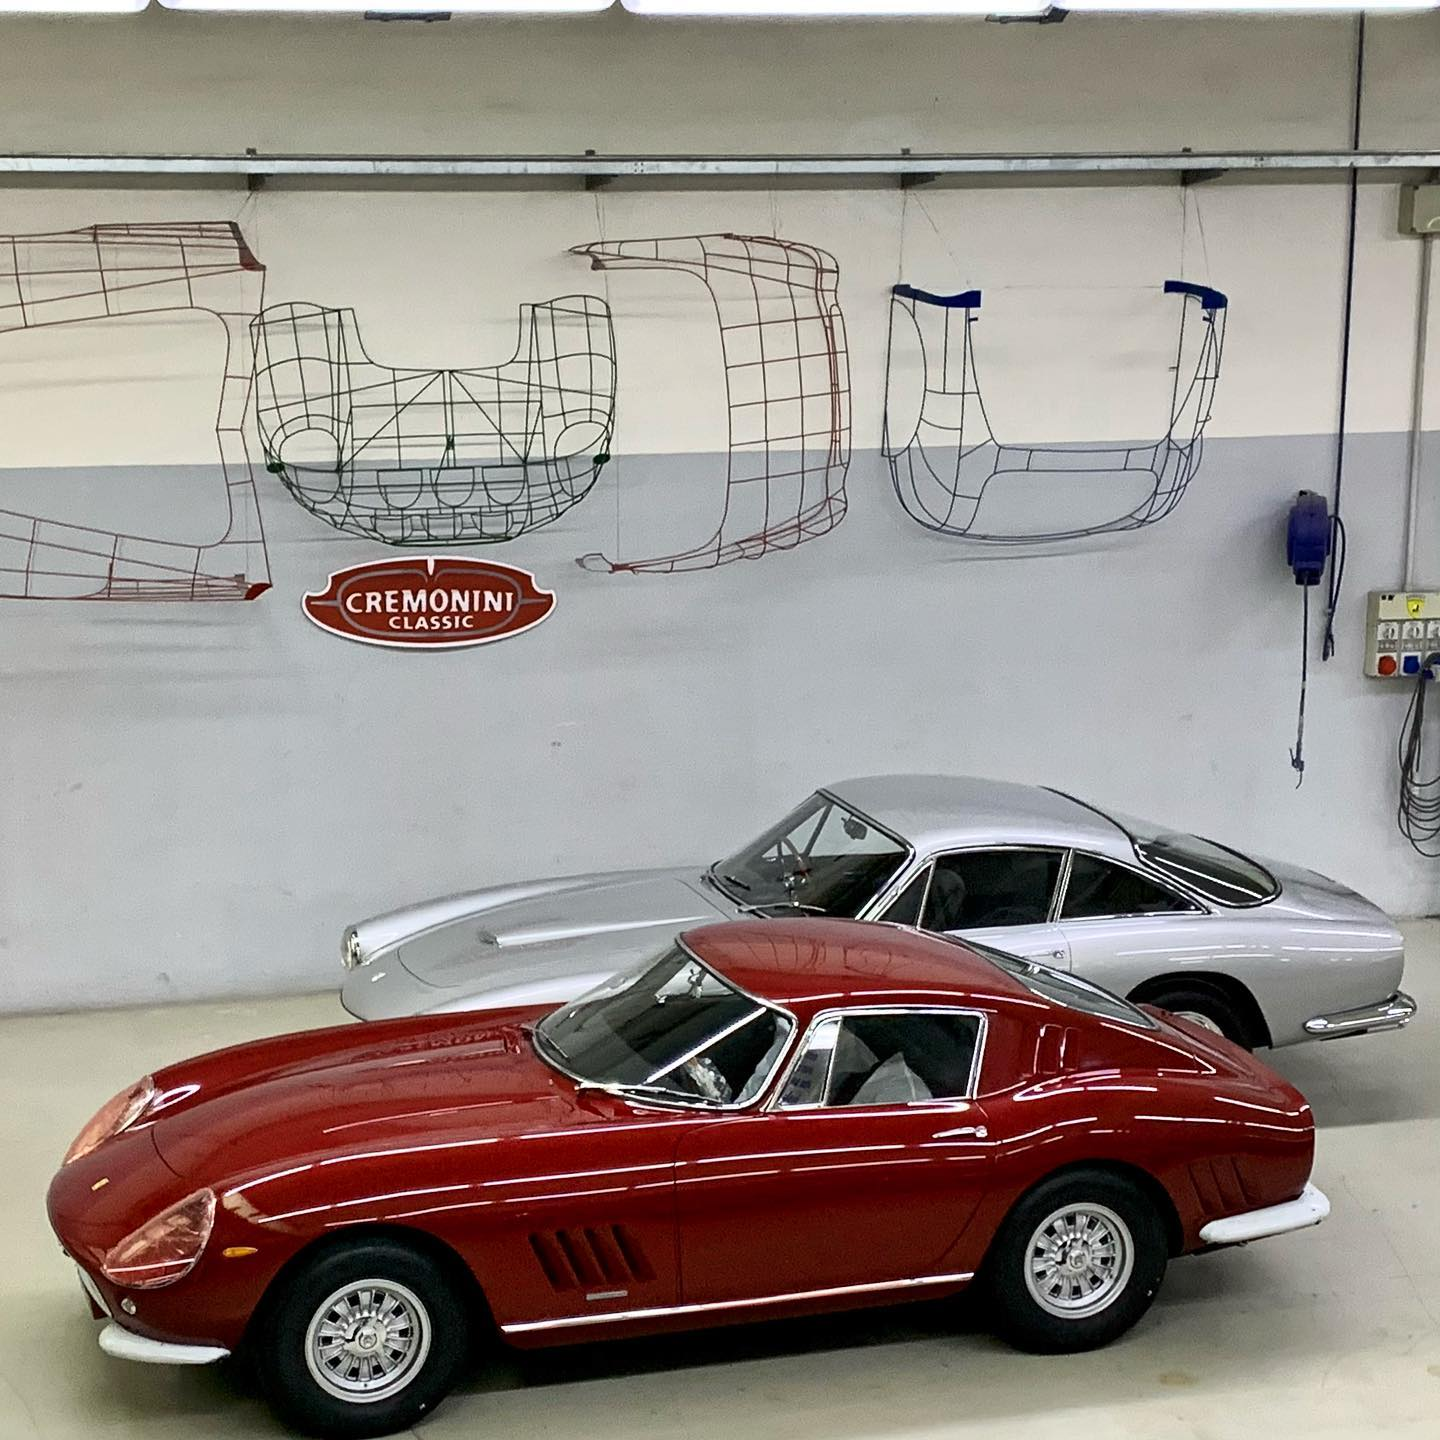 For everyone working and relaxing this weekend, enjoy the view from above of two projects we were thrilled to be part of: 250 GTL ready for delivery and 275 Competizione waiting for the finishing touches – – – #ferrari275 #ferrari250gtlusso #ferrari #cremoniniclassic #sixtiesstyle #madeinitaly #italianstyle #italiansdoitbetter #doosetdaram #StaySafeRidetheCurve #FerrariFriday